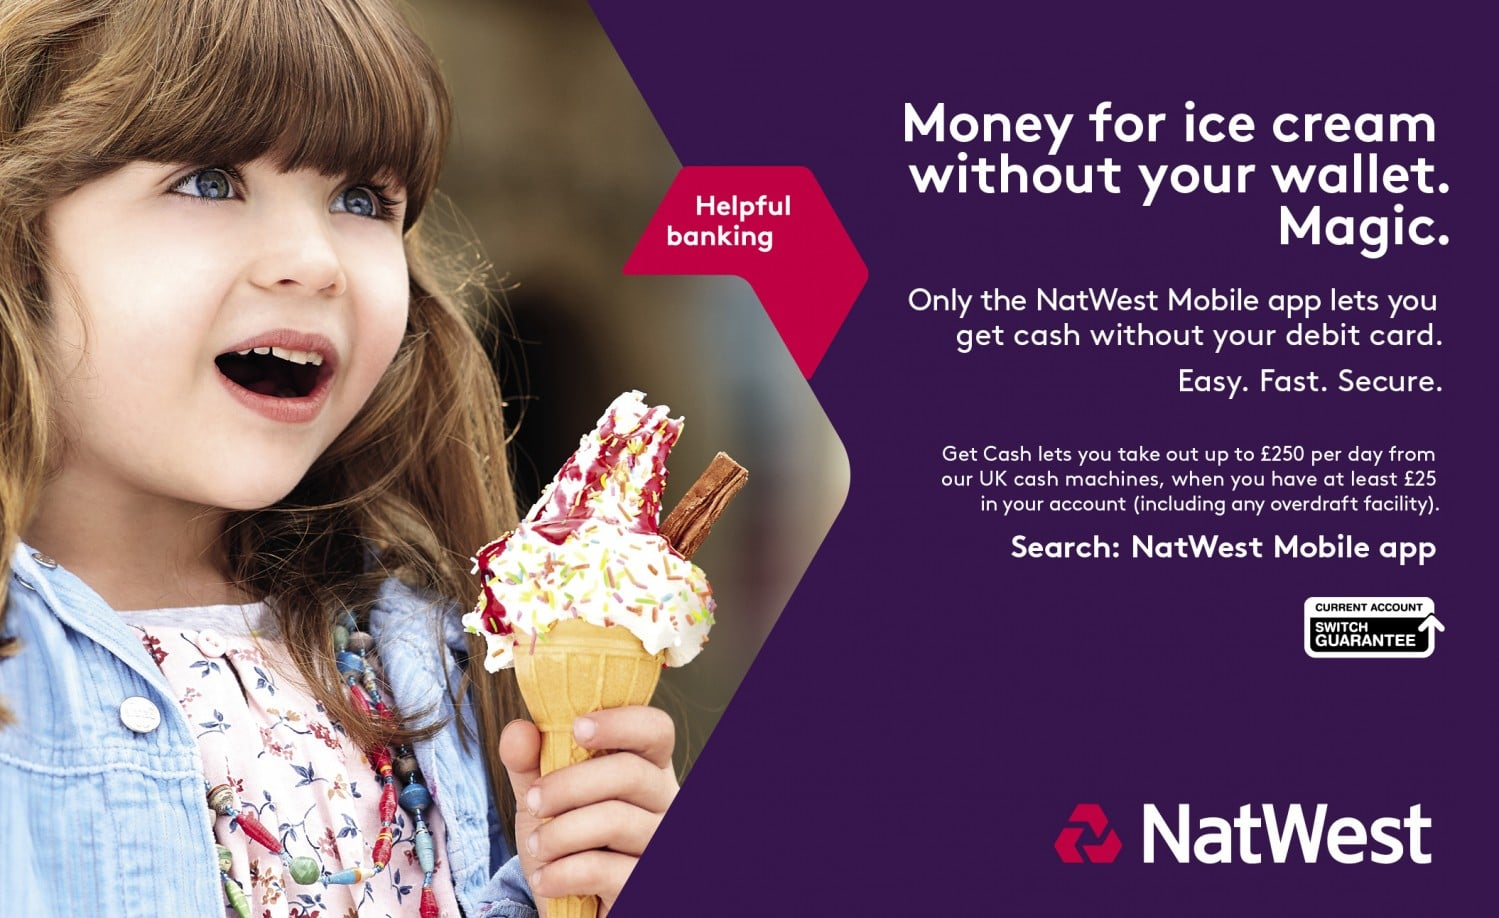 natwest-icecream.jpg